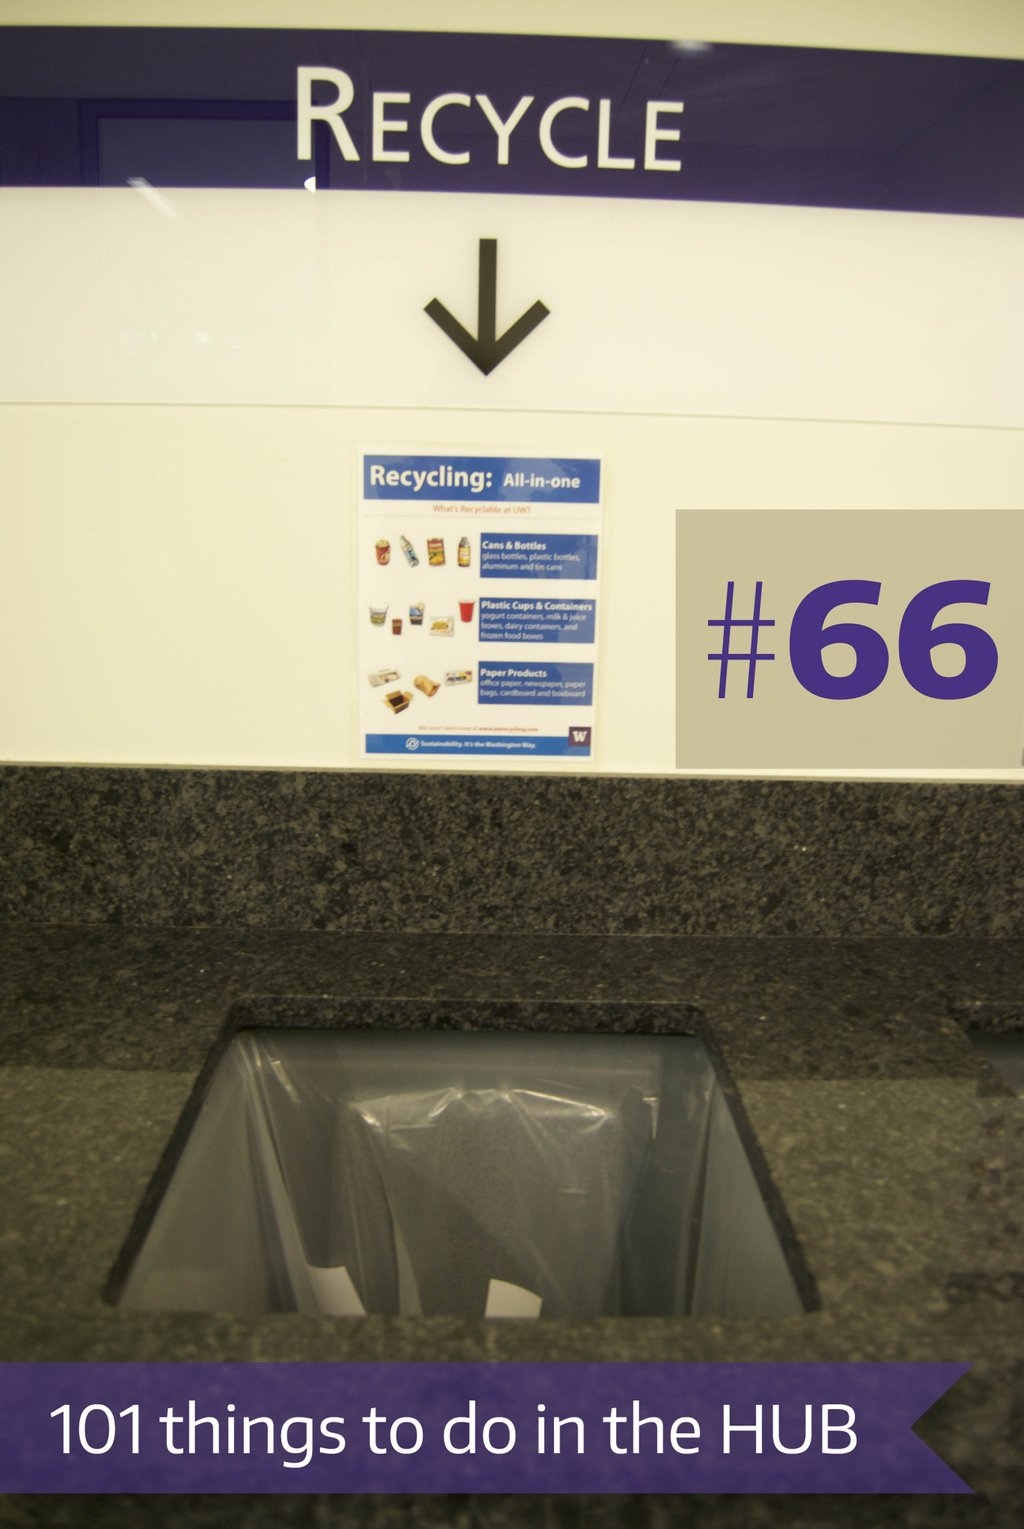 66. Recycle your paper, cardboard, plastic, & glass at the HUB